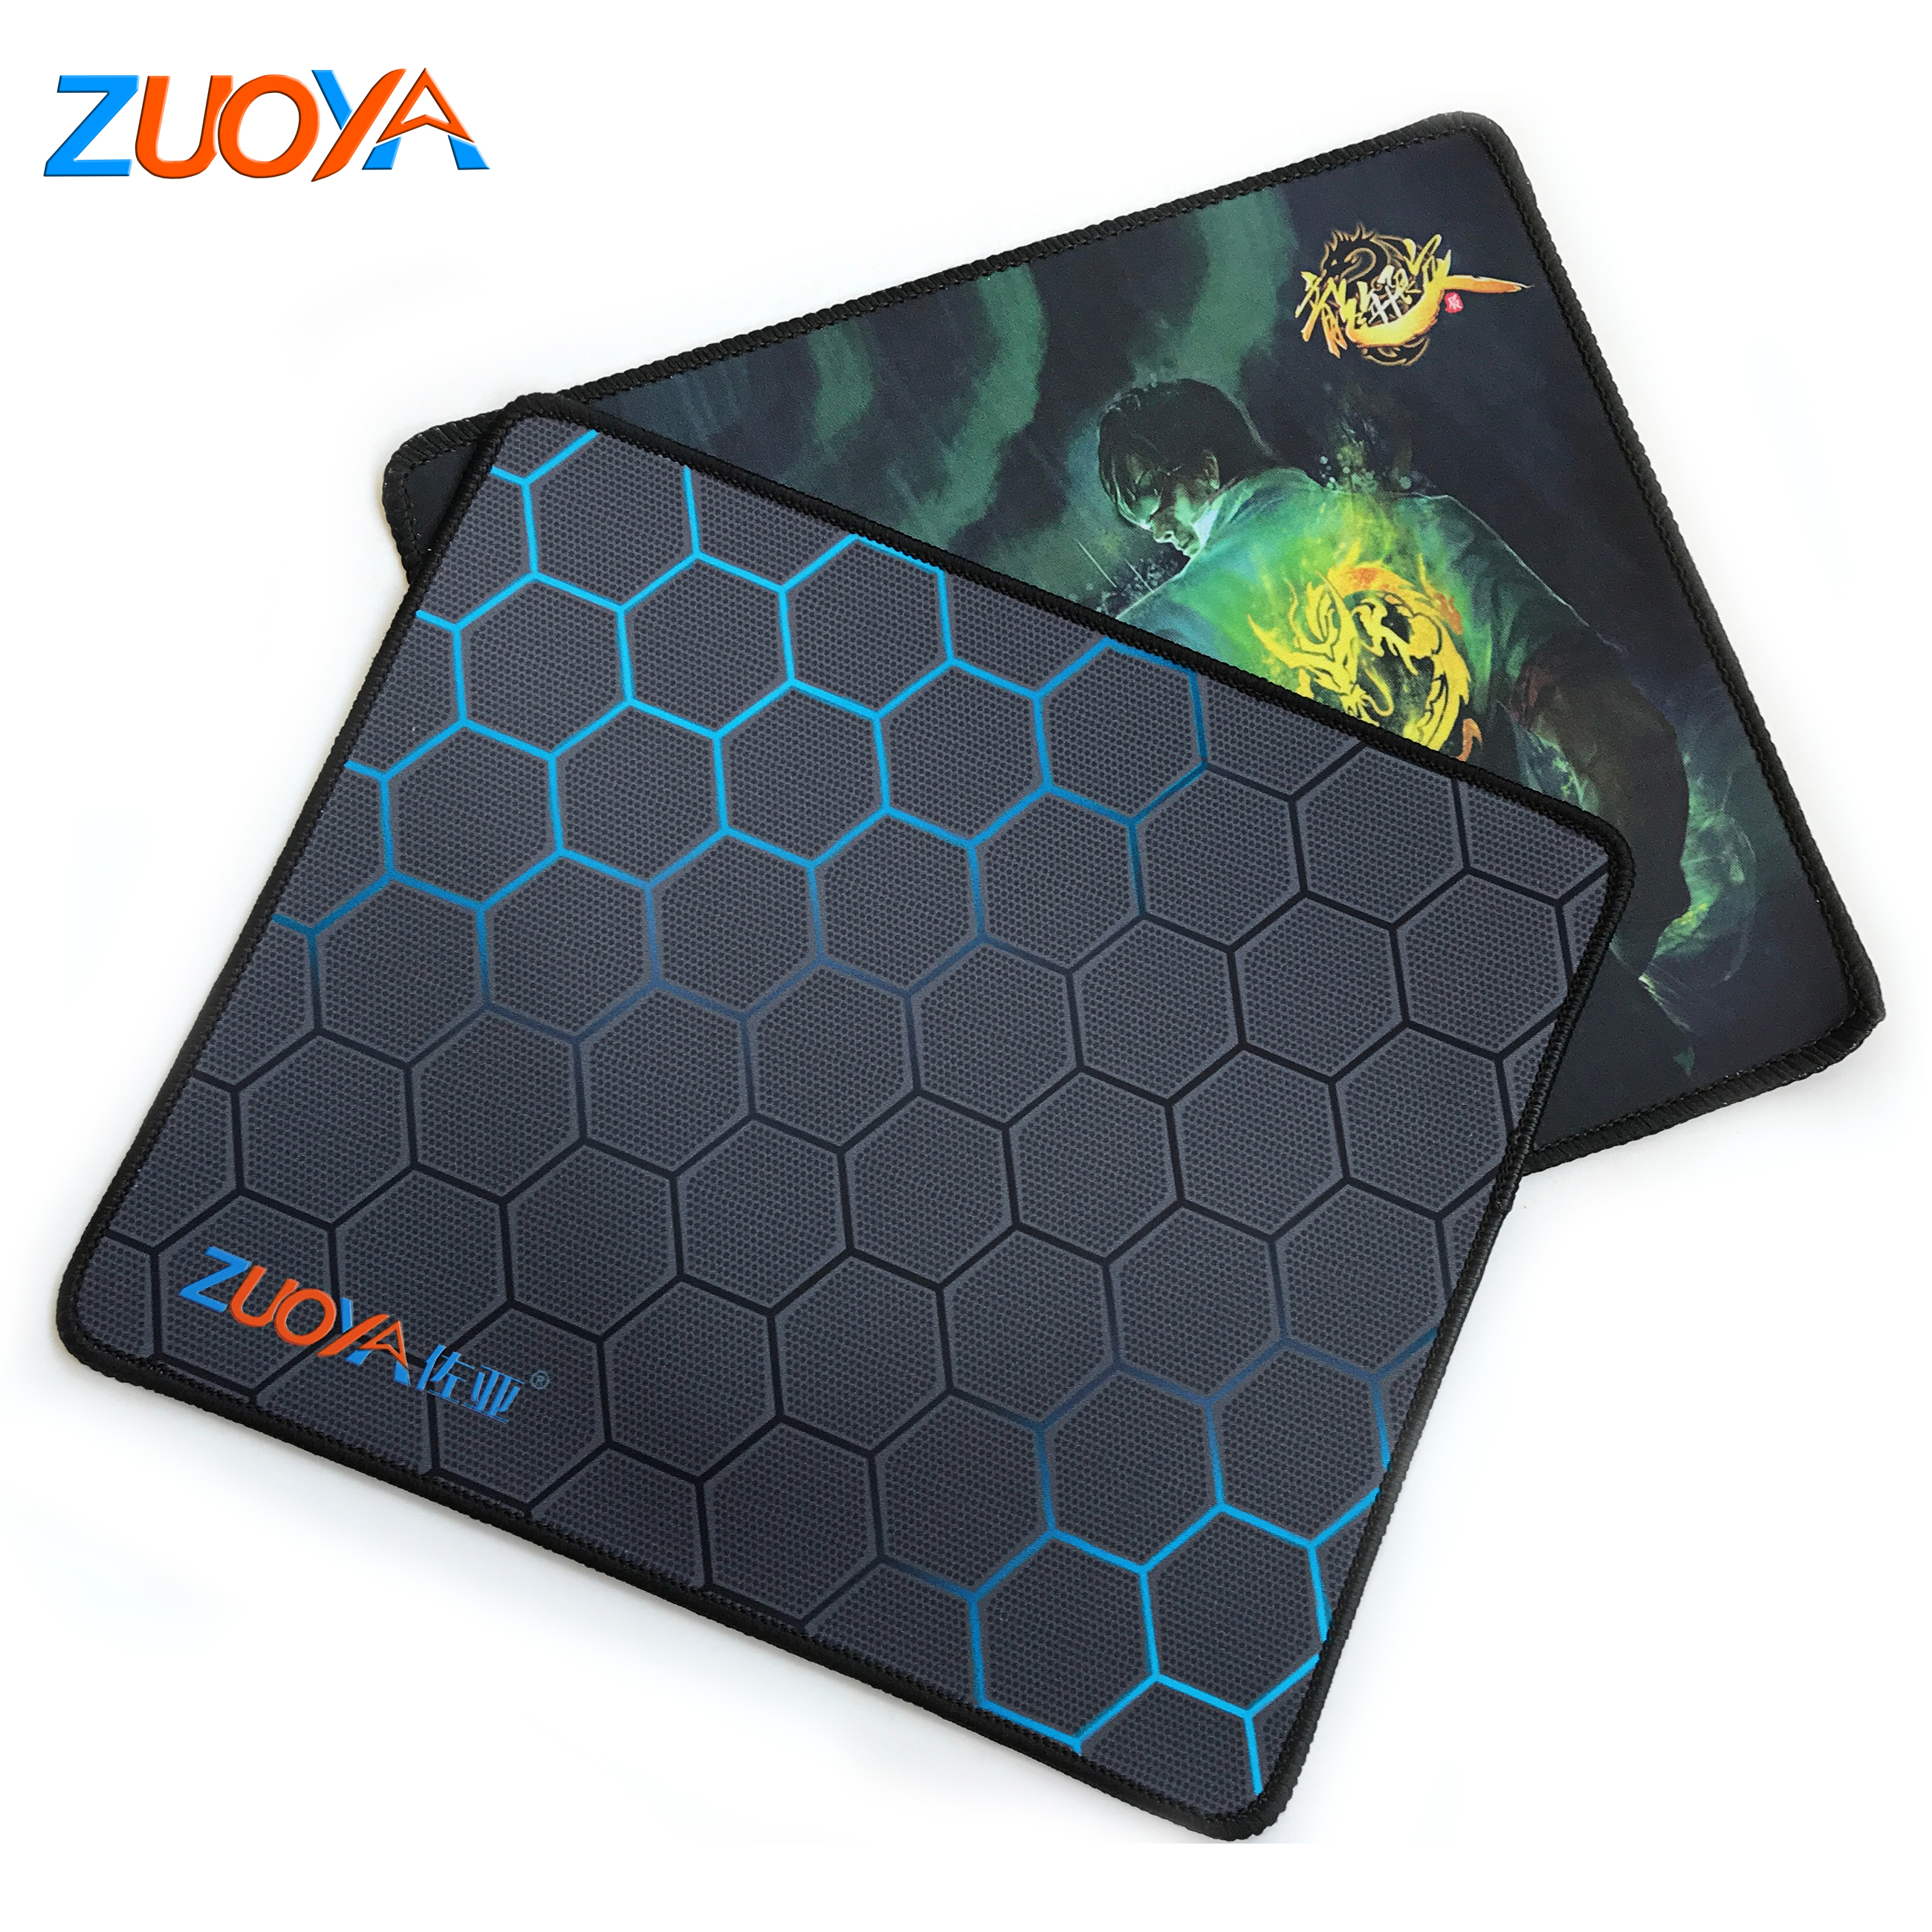 Gaming Mouse Pad Gamer Computer Anti-slip With Locking Edge Mousepad Natural Rubber Surface Mause Keyboard Desk Mat Game Office